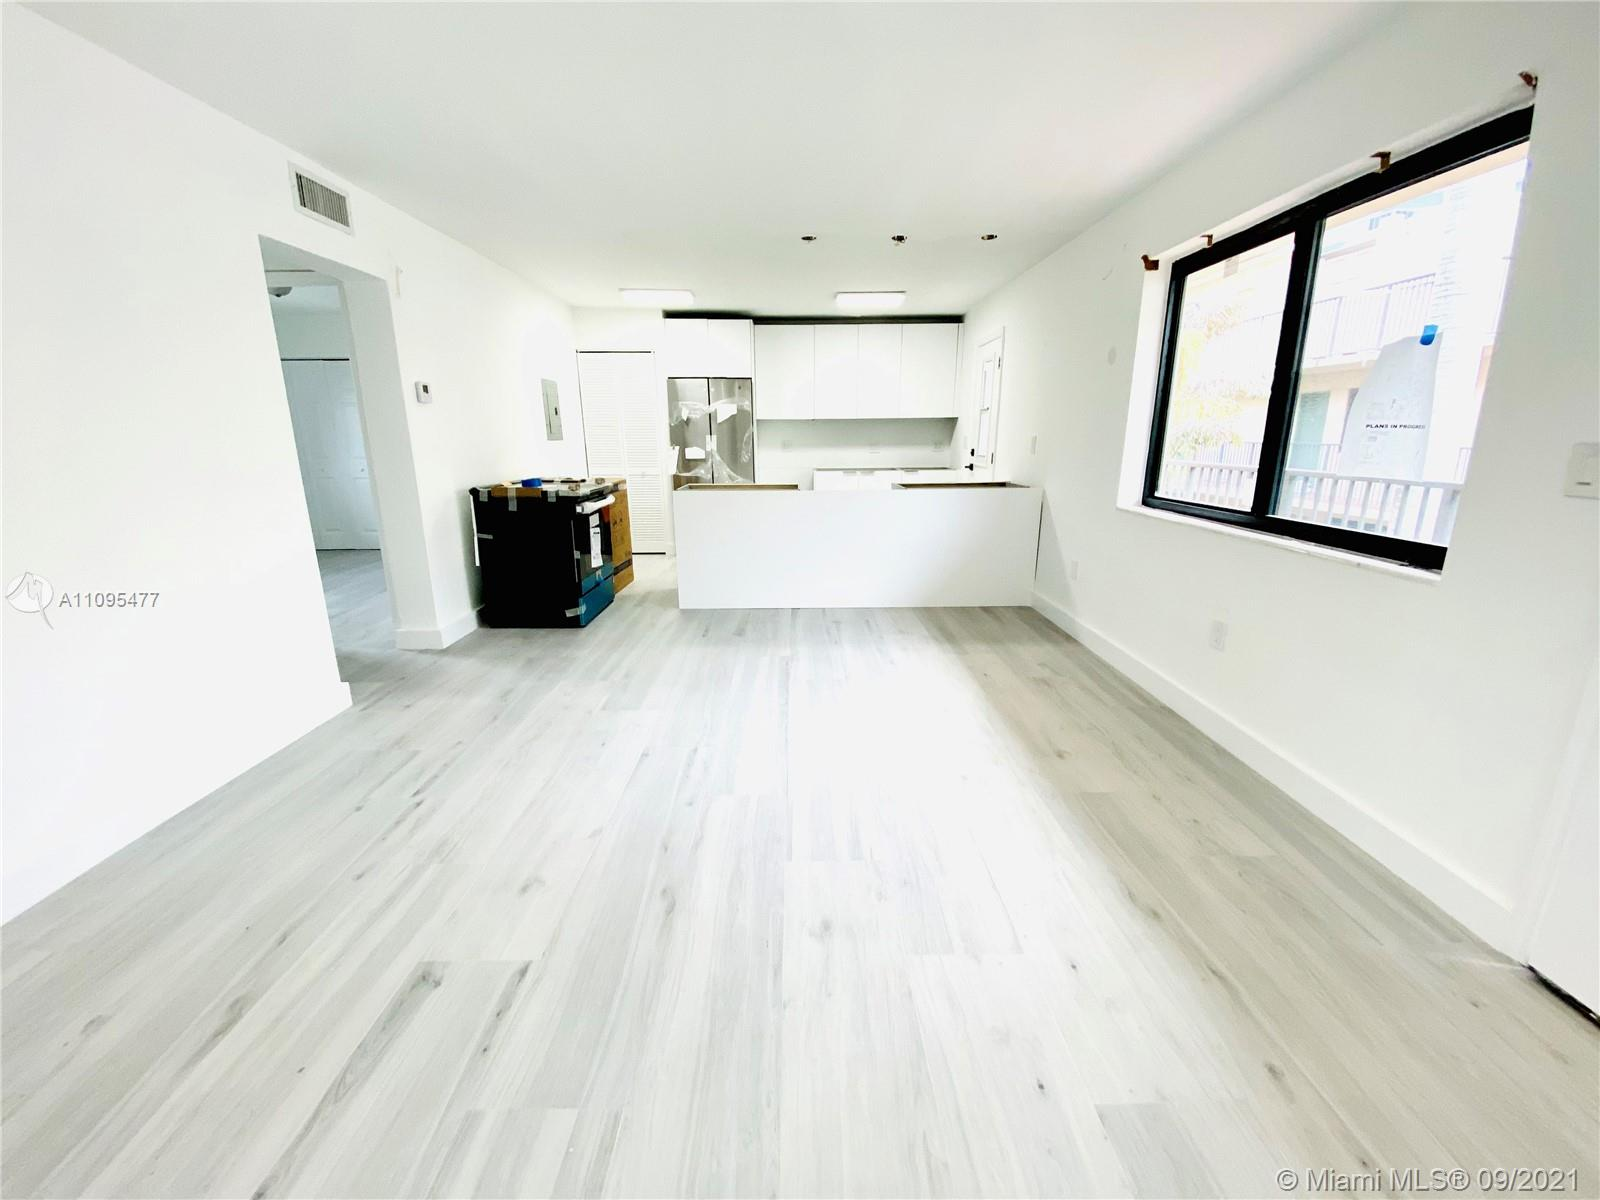 JUST REMODELED Modern 2bed with a beautiful Garden Oasis, located in the heart of Coconut Grove! Pet-friendly, 2 Bedroom unit is steps from CocoWalk, Peacock Park, Kennedy Park, world-class shopping & dining. Boasting modern tiled floors, top-of-the-line appliances, and a modern open kitchen, your new home awaits! The Courtyards are residential condos under a canopy of shade trees, complete with gated access & secured parking. The community offers swimming pools, lounge chairs & patio tables in the courtyard. Minutes from UM & City Center. Available Sept 20th. It won't last. Call for showings!